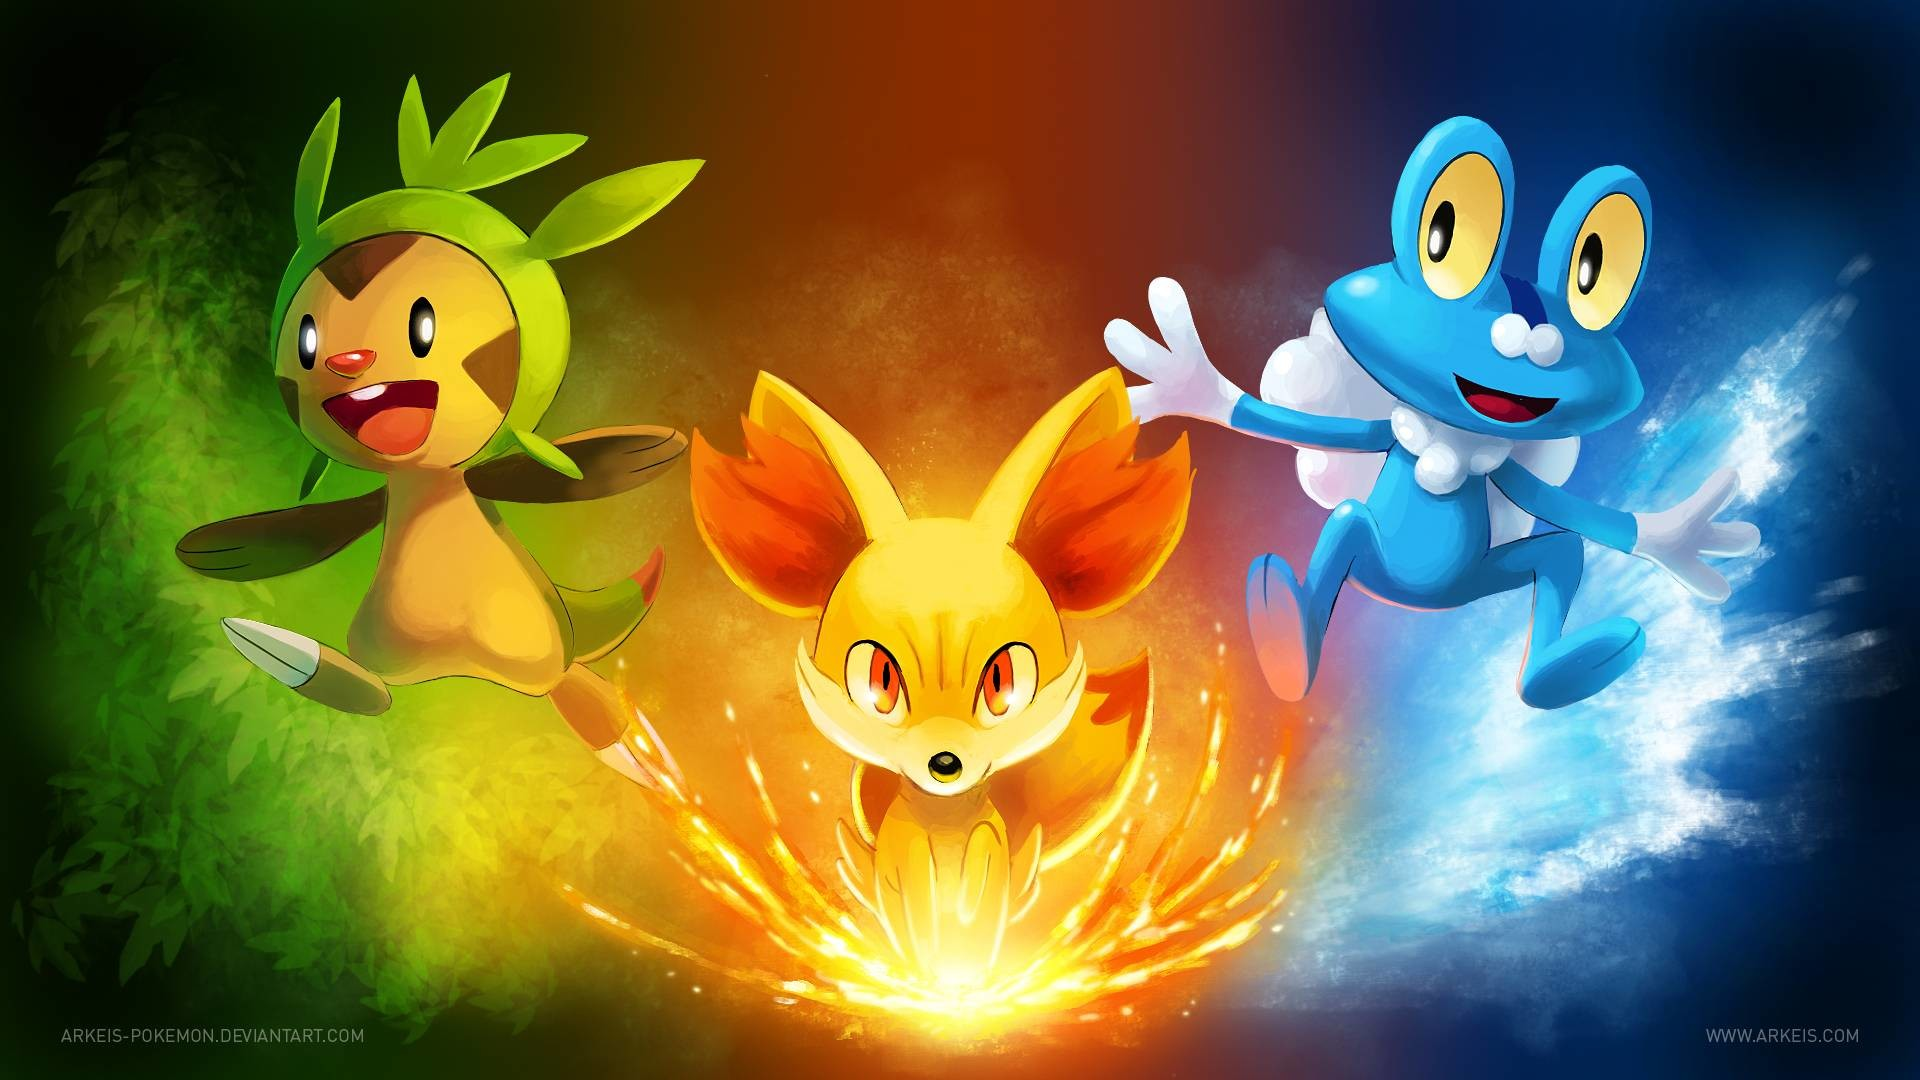 1920x1080 pokemon x and y hd wallpaper Â« GamingBolt.com: Video Game News .